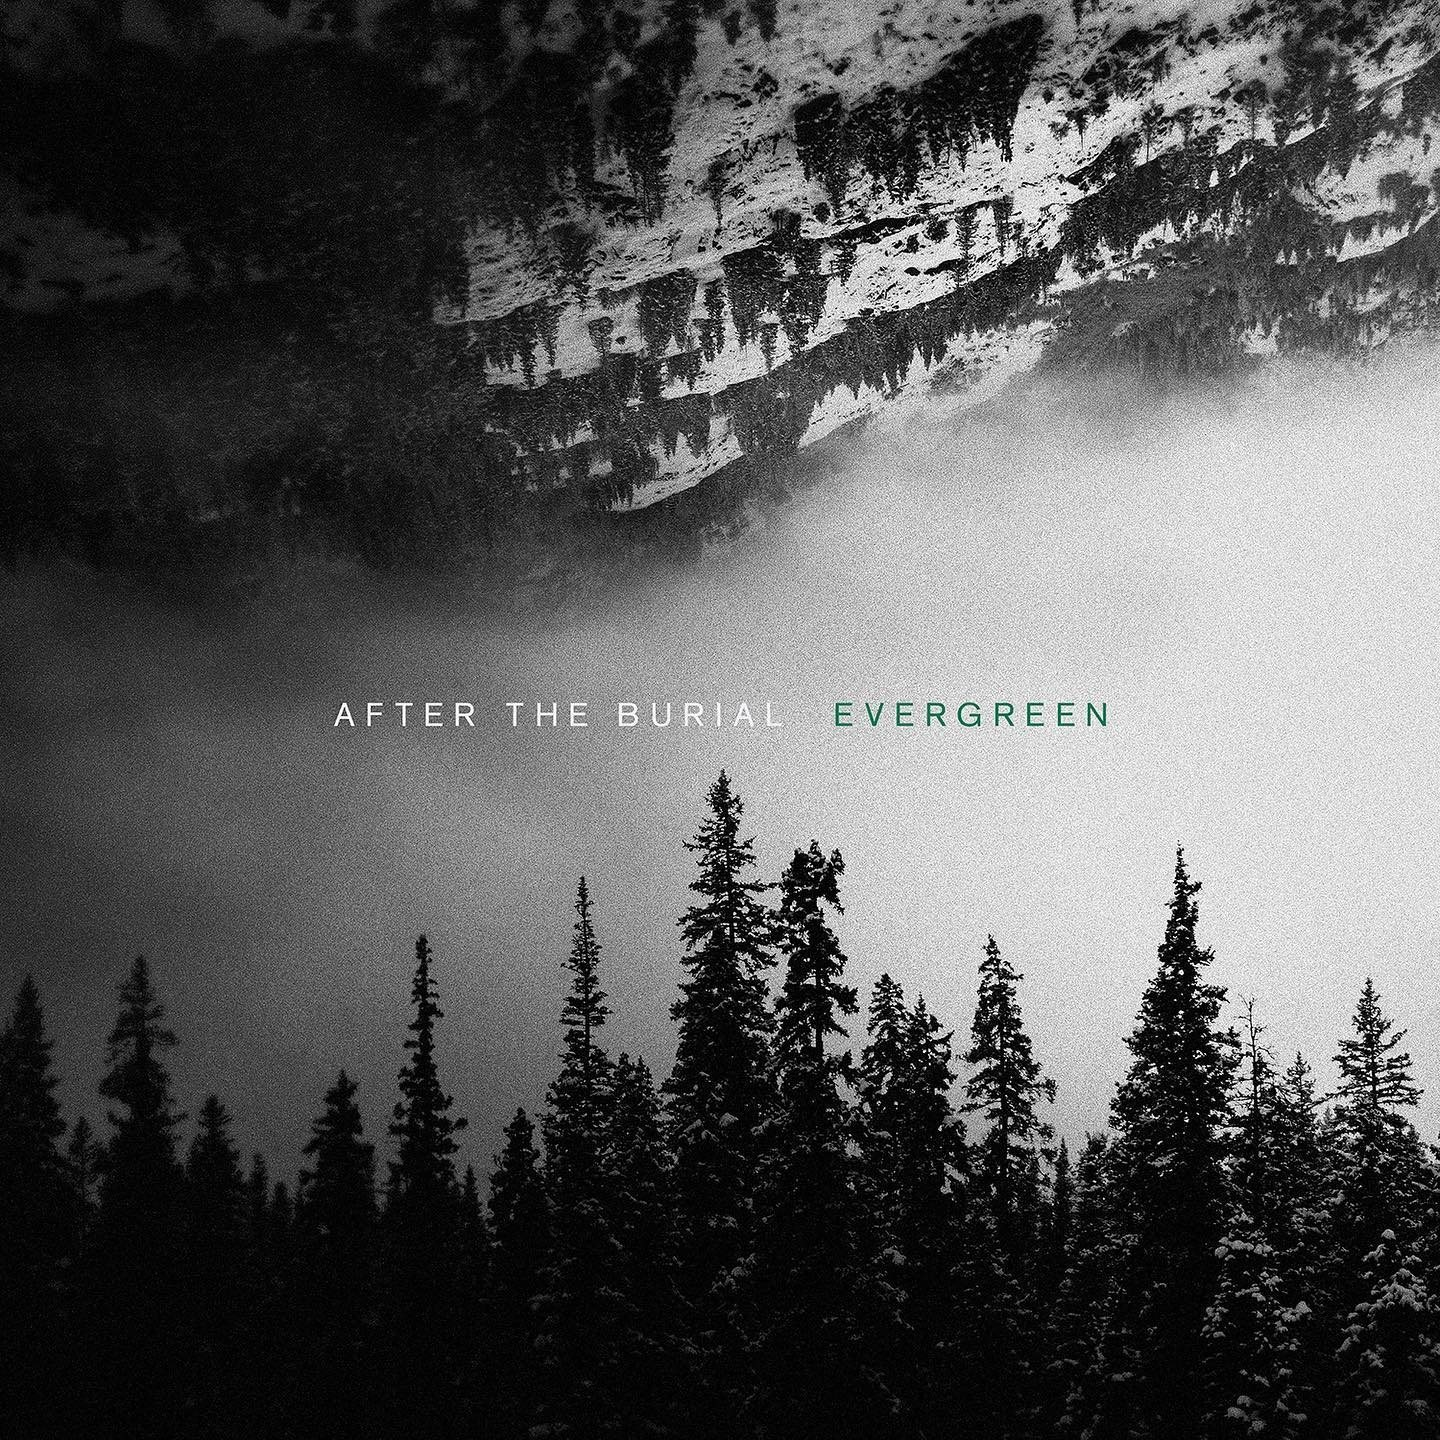 after the burial evergreen artwork